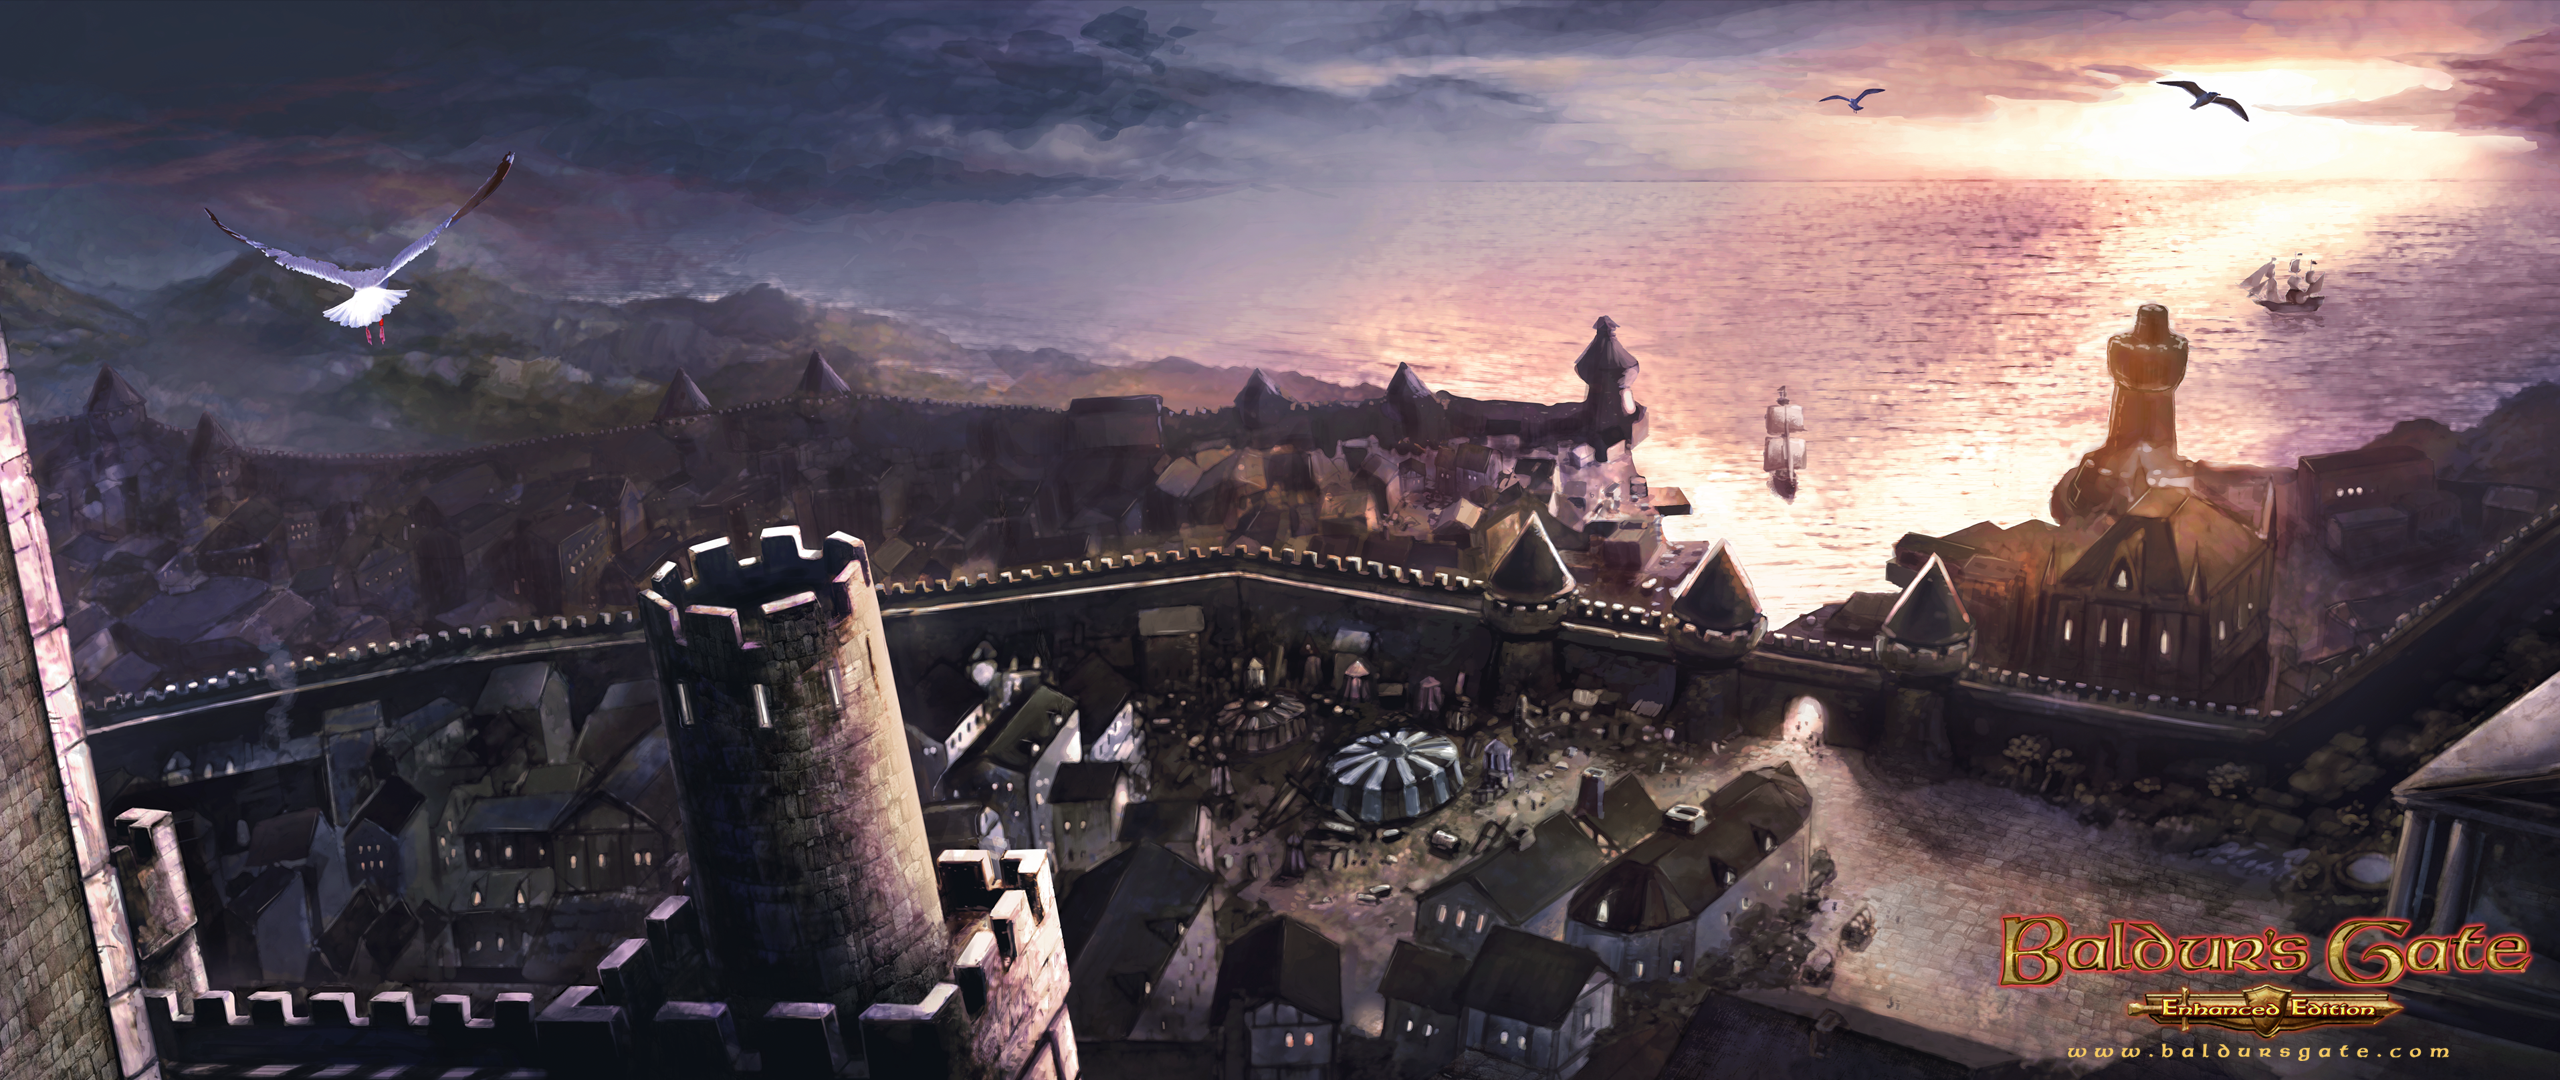 Last Month Weoffered Three Free Wallpaper Designs For Icewind Dale